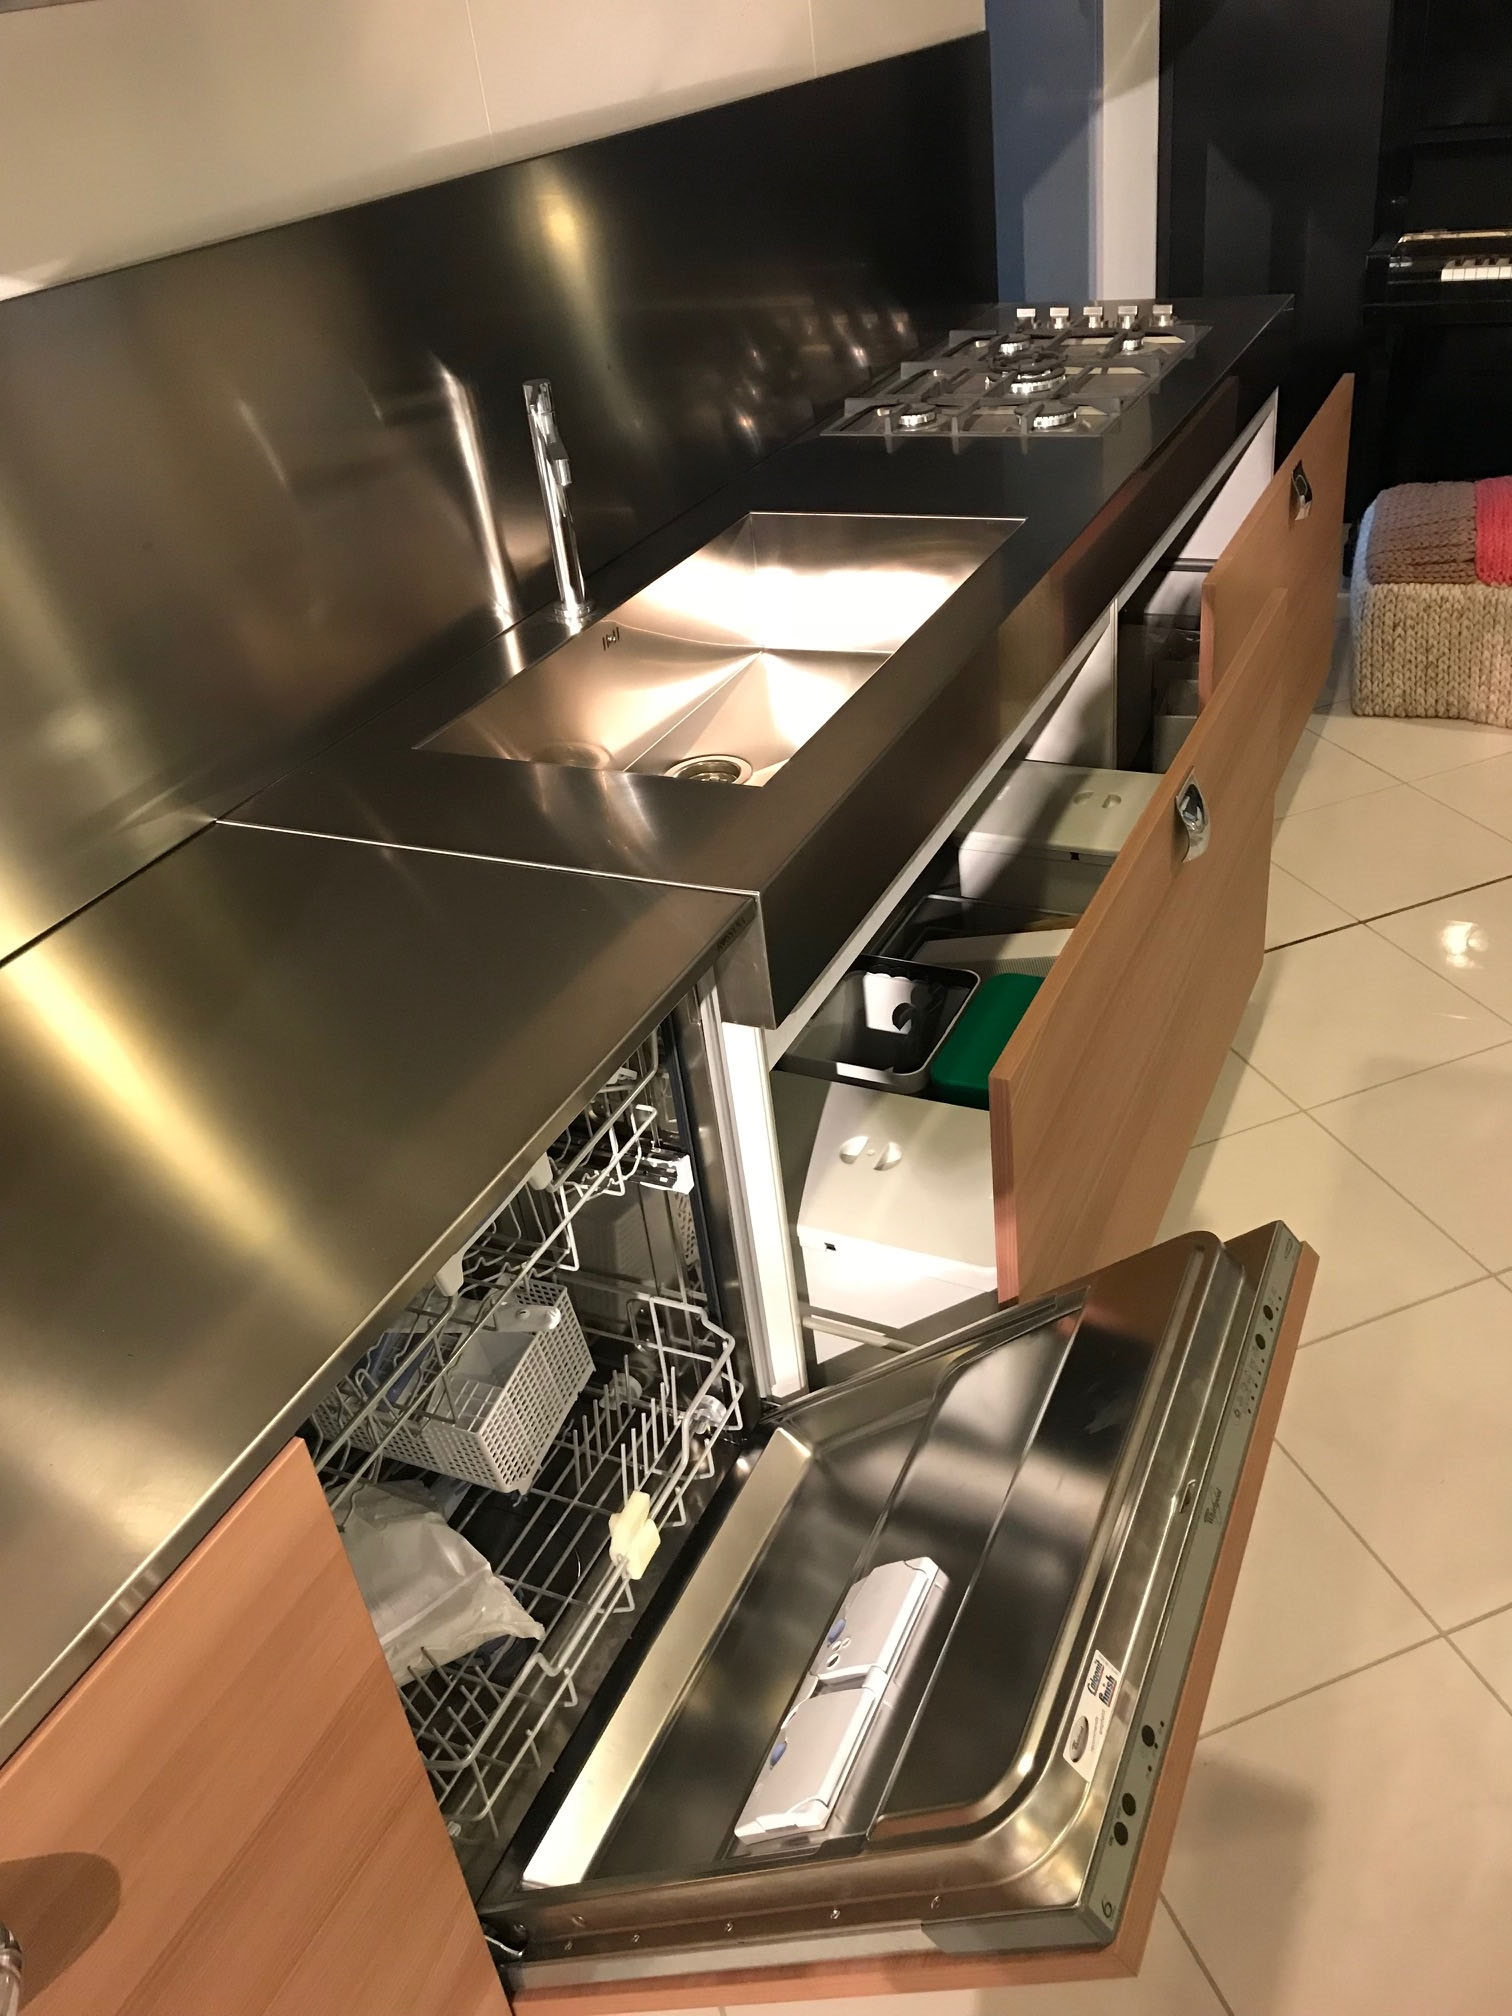 cucine rb rossana - 28 images - cucina lineare rb rossana a prezzi ...